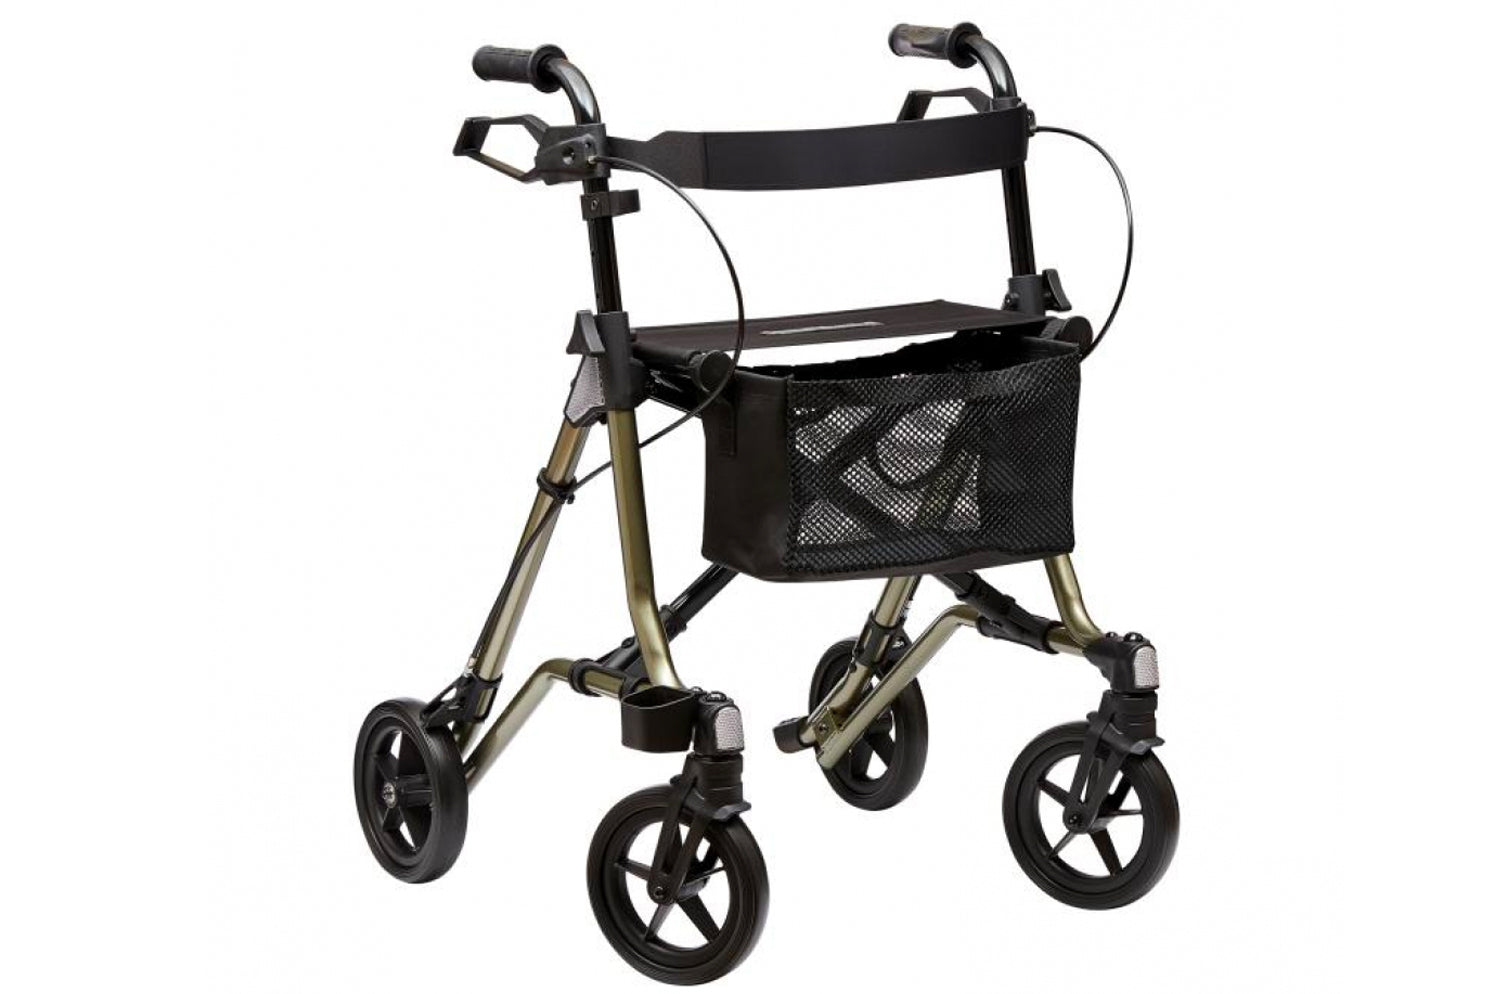 Dietz Taima M-GT Lightweight Aluminium Rollator Foldable with Back Strap and Bag